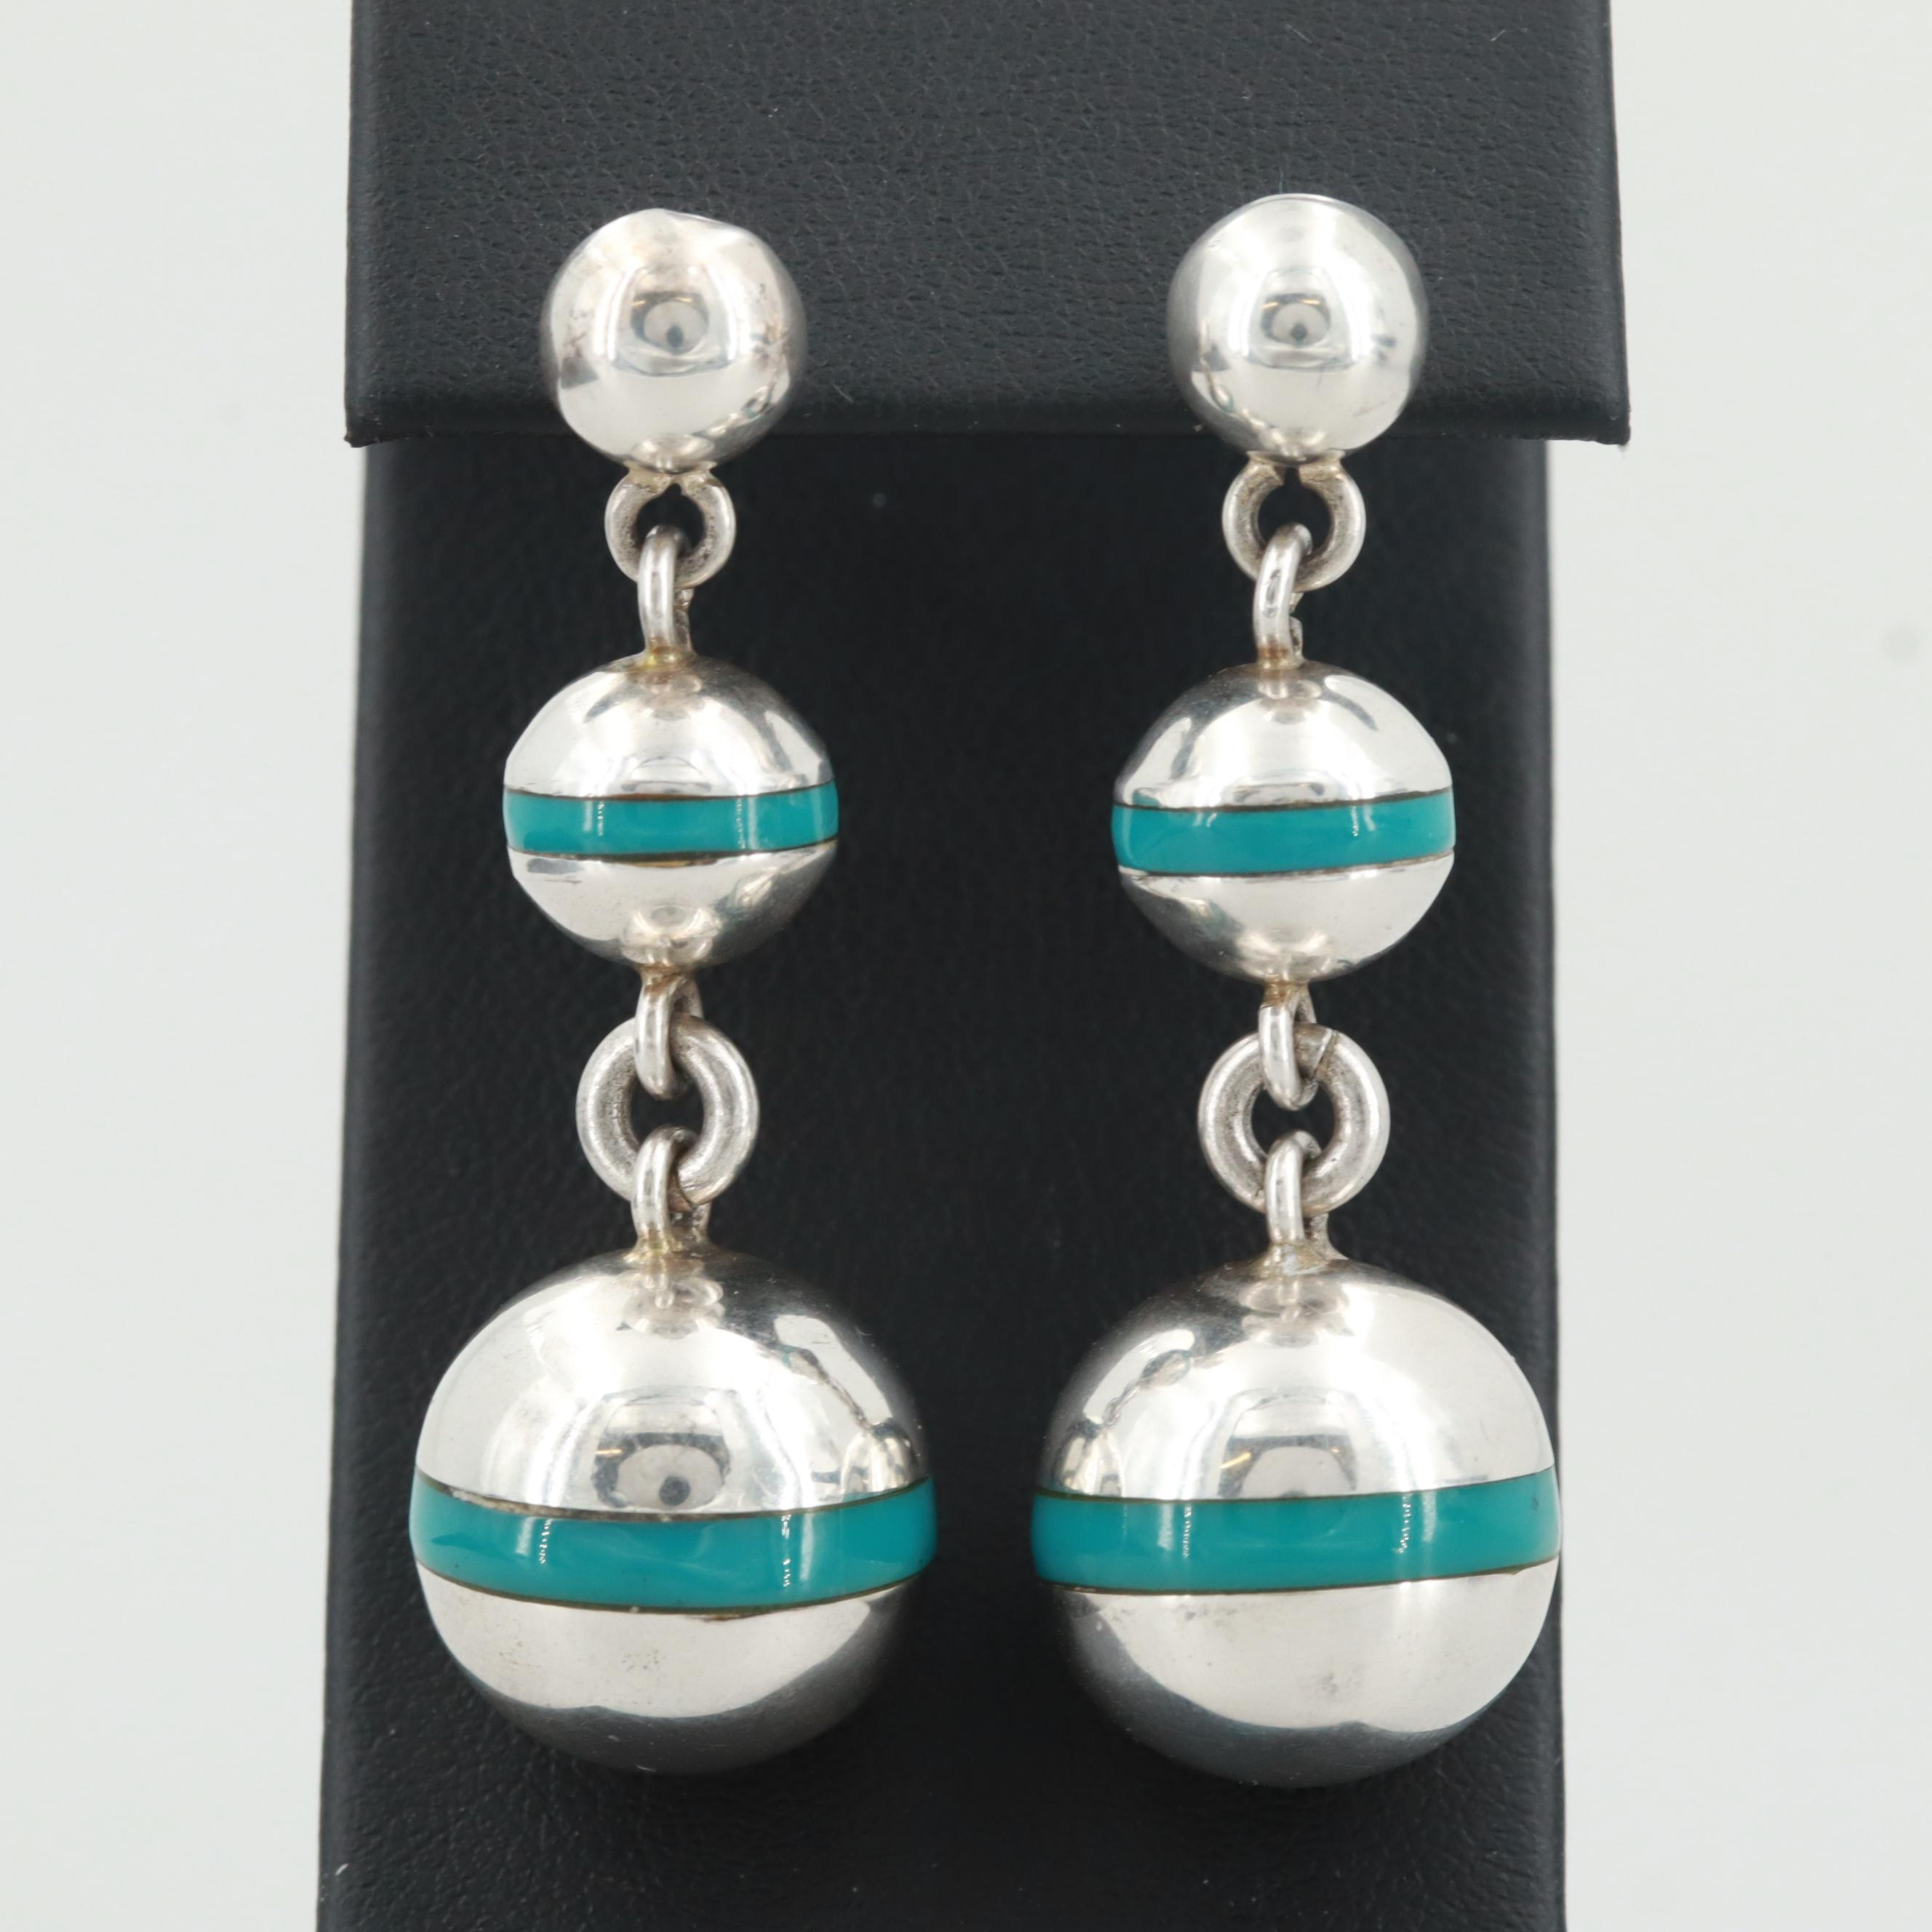 Vintage Mexican Sterling Silver Dangling Spherical Earrings with Resin Accents